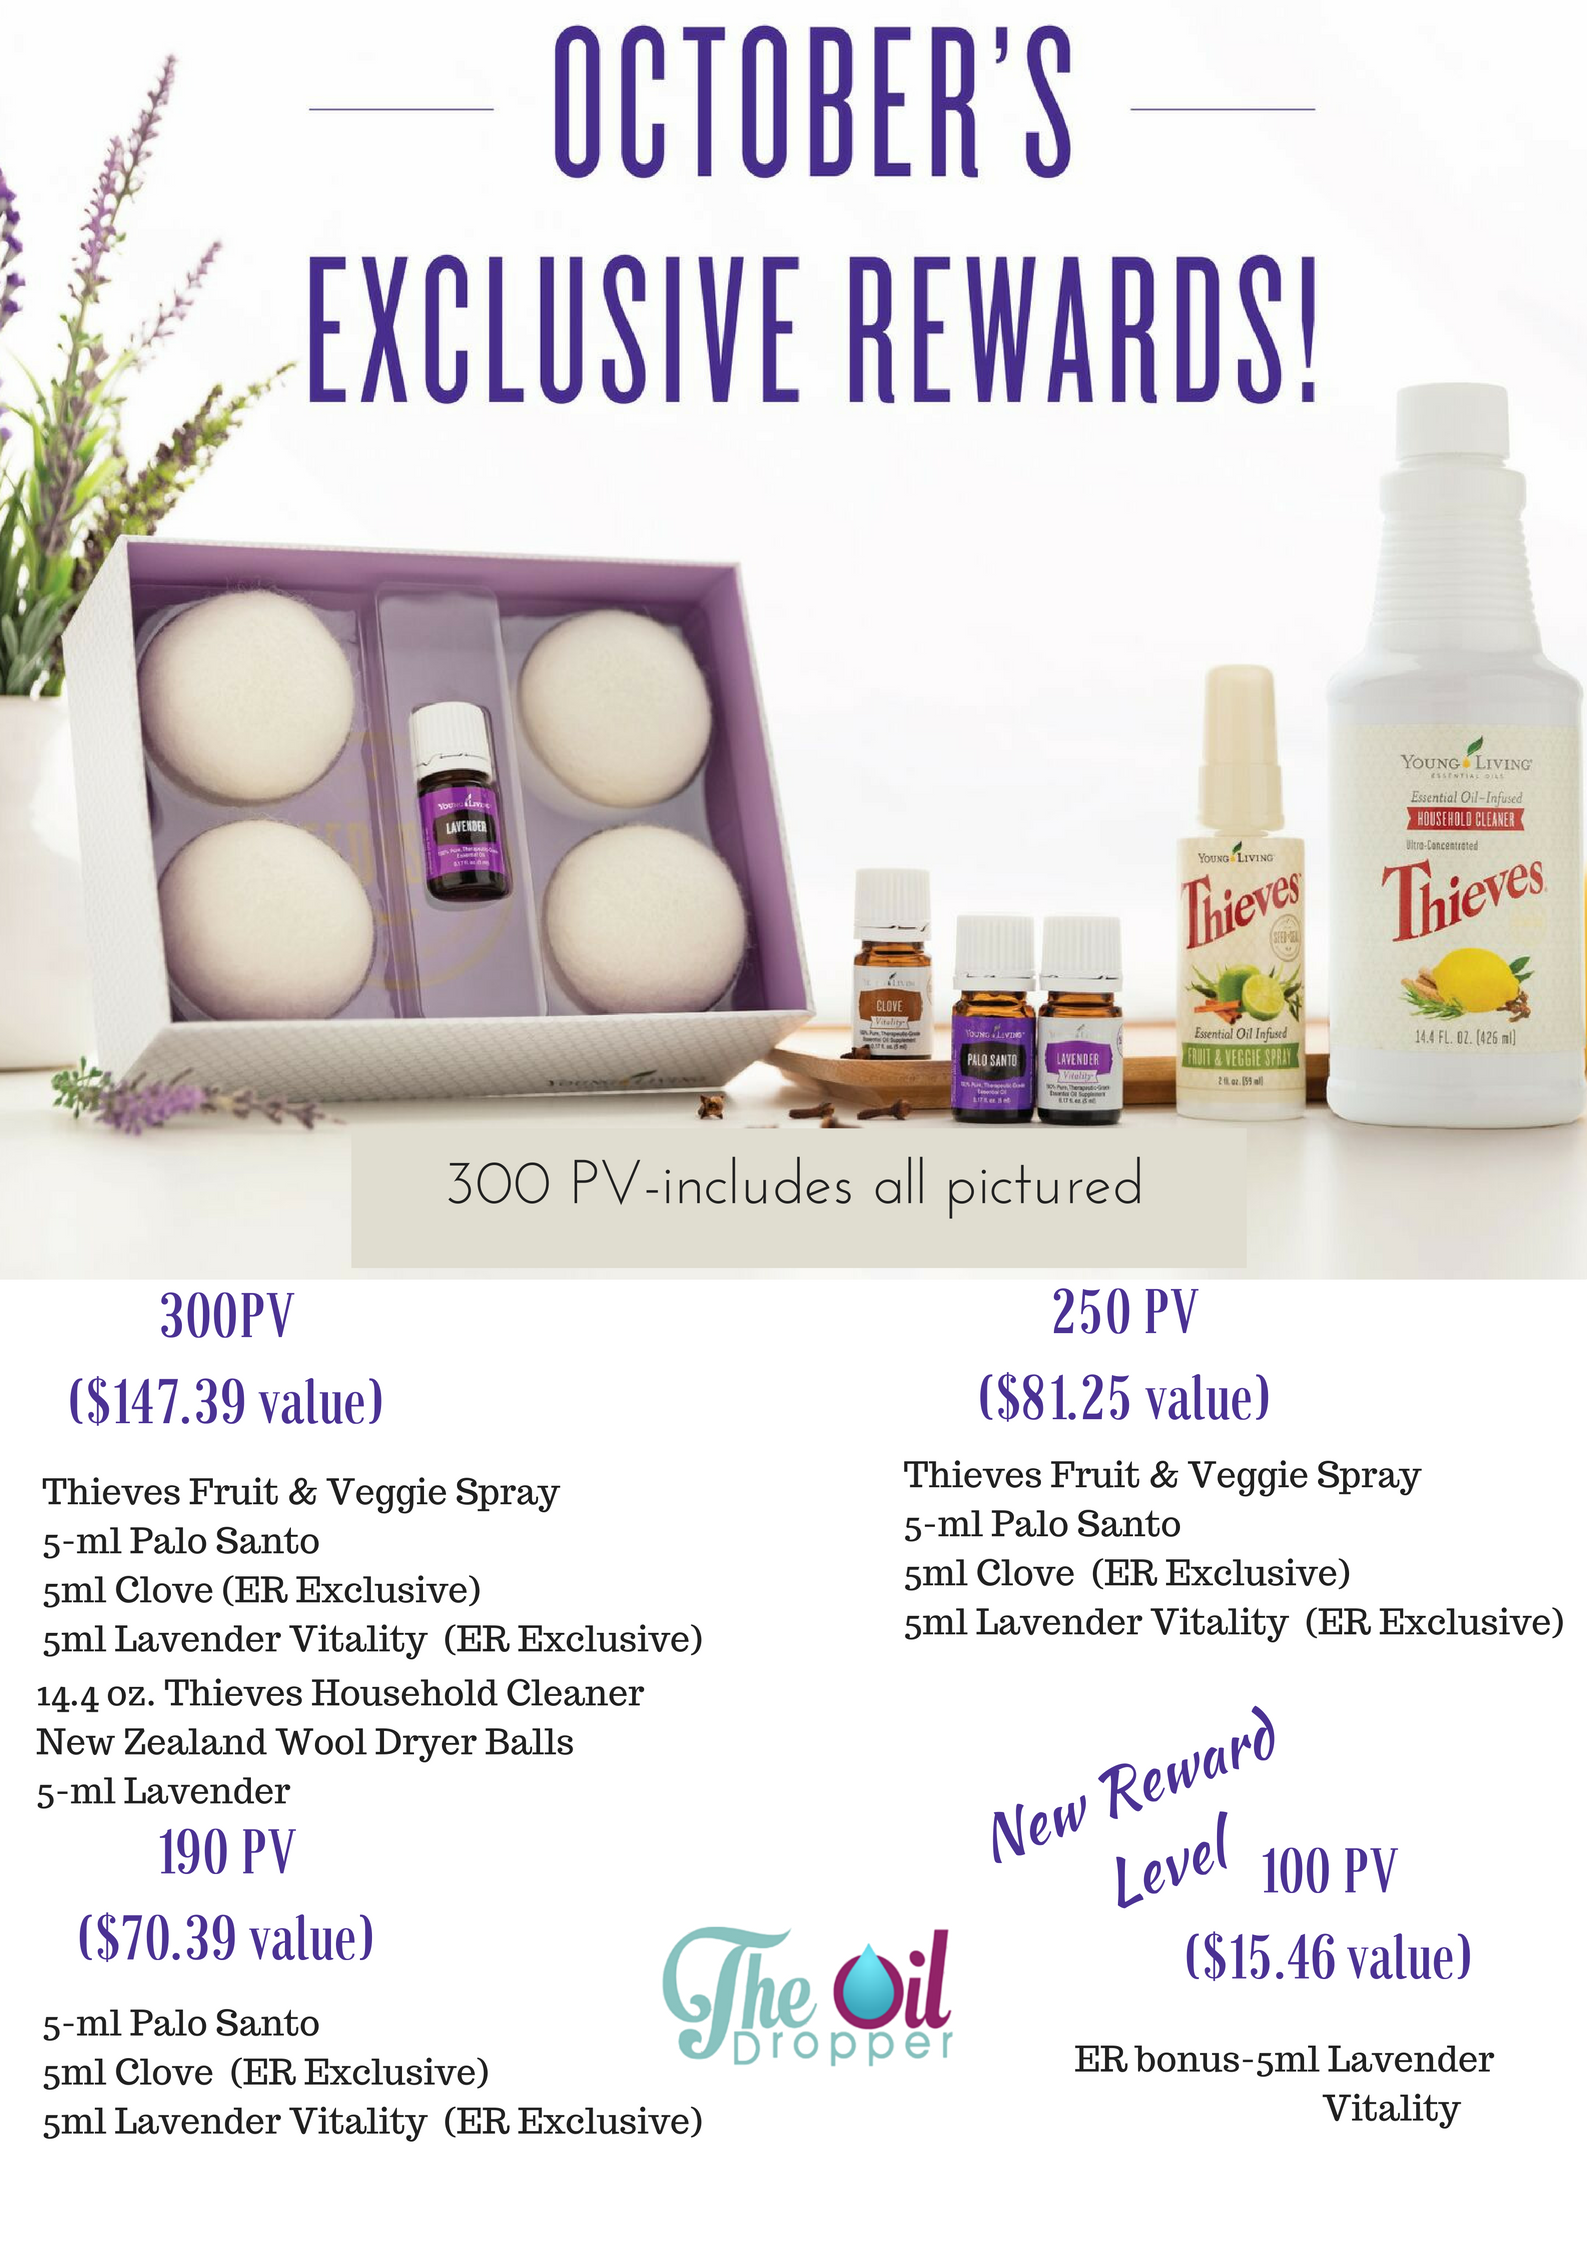 Aveeno coupon printable 2018